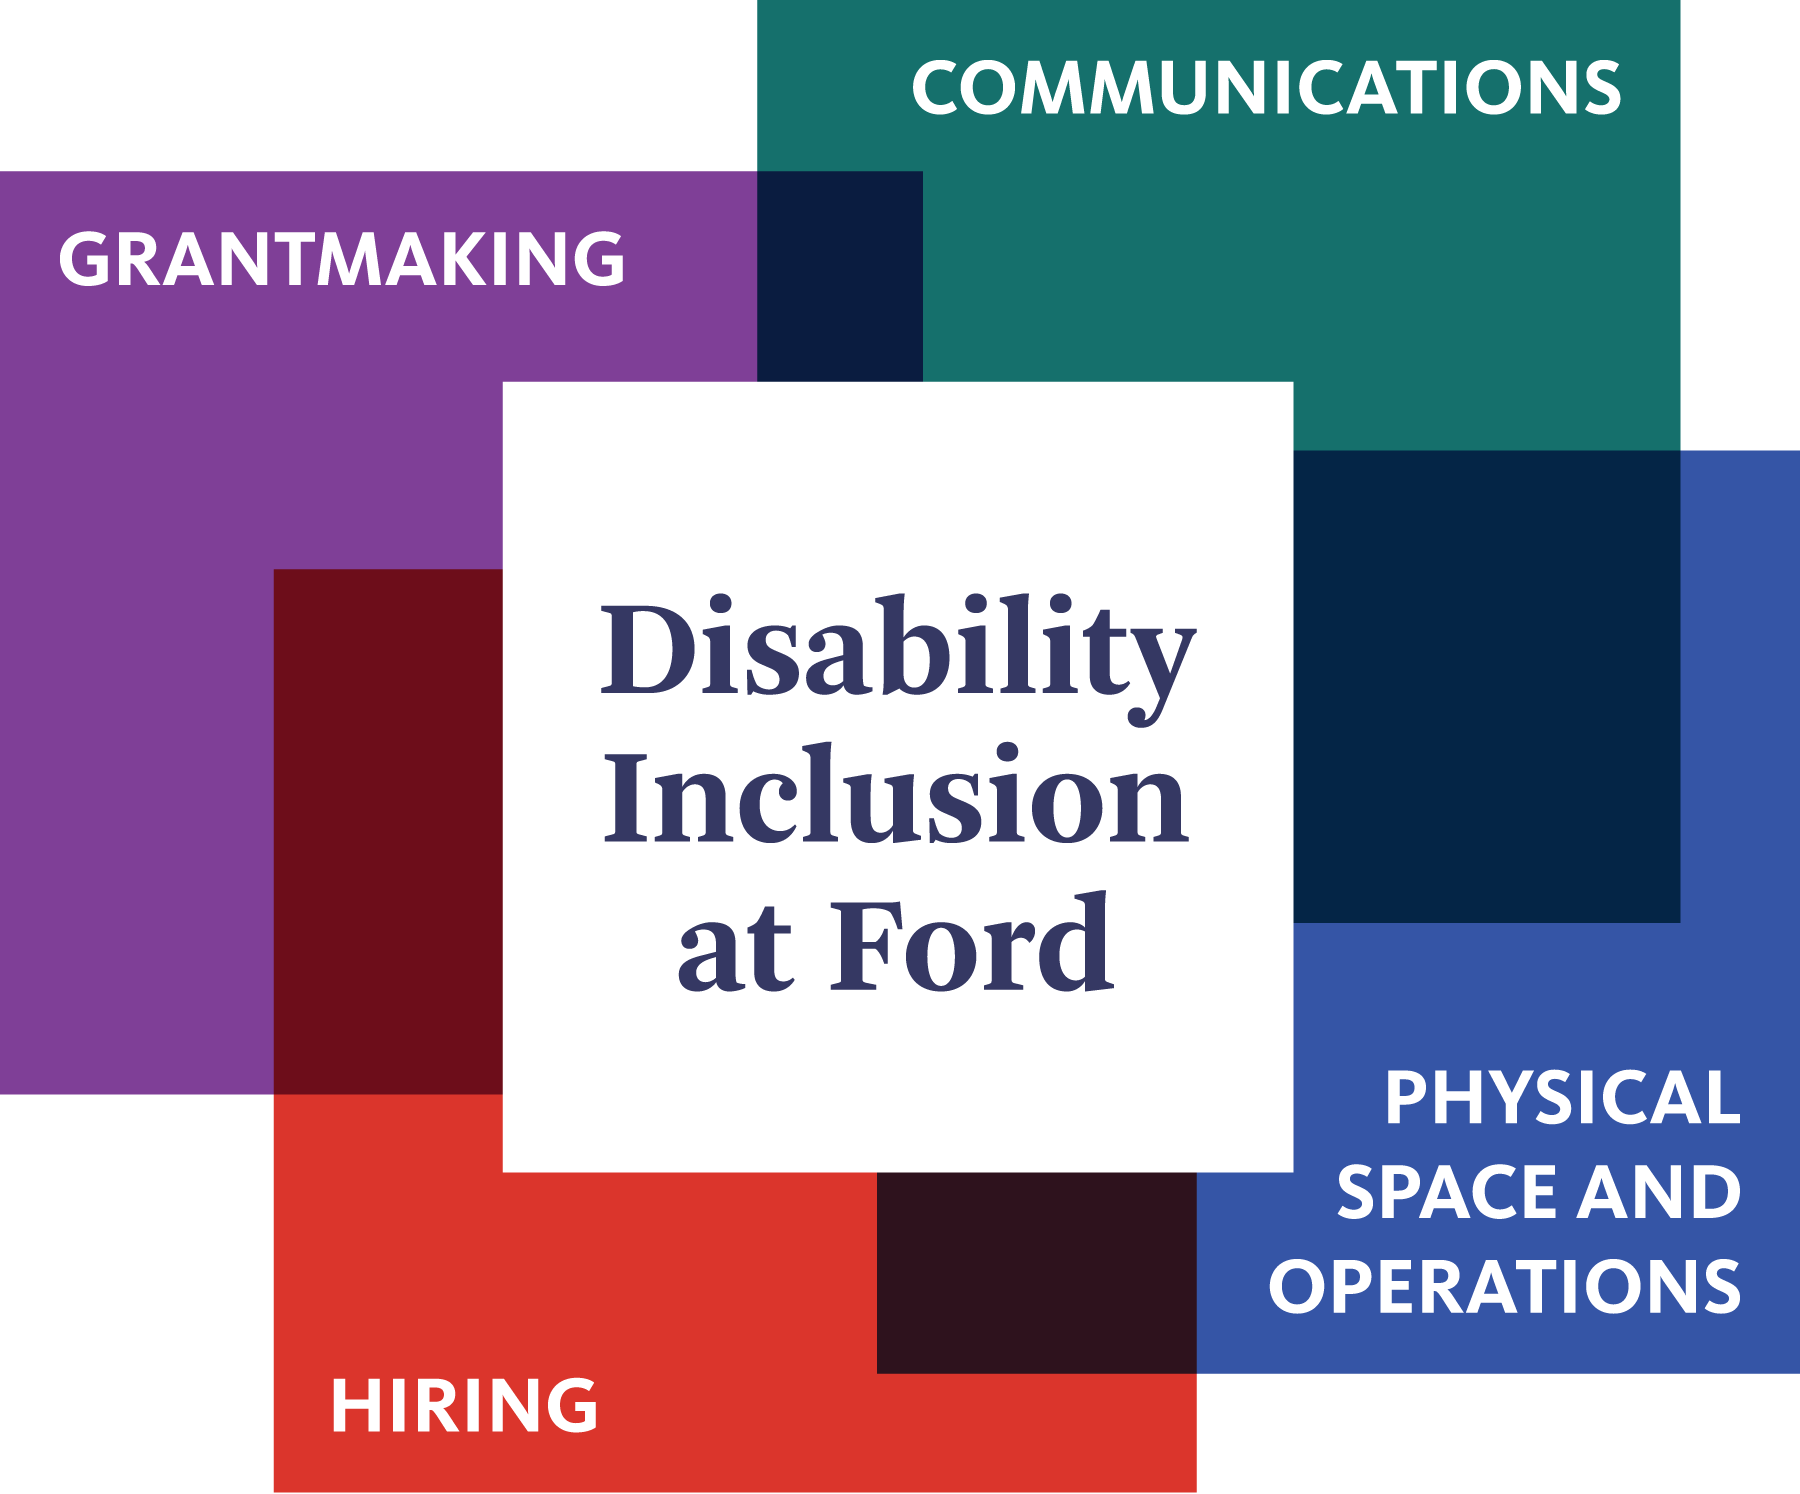 Venn diagram of Disability Inclusion at Ford